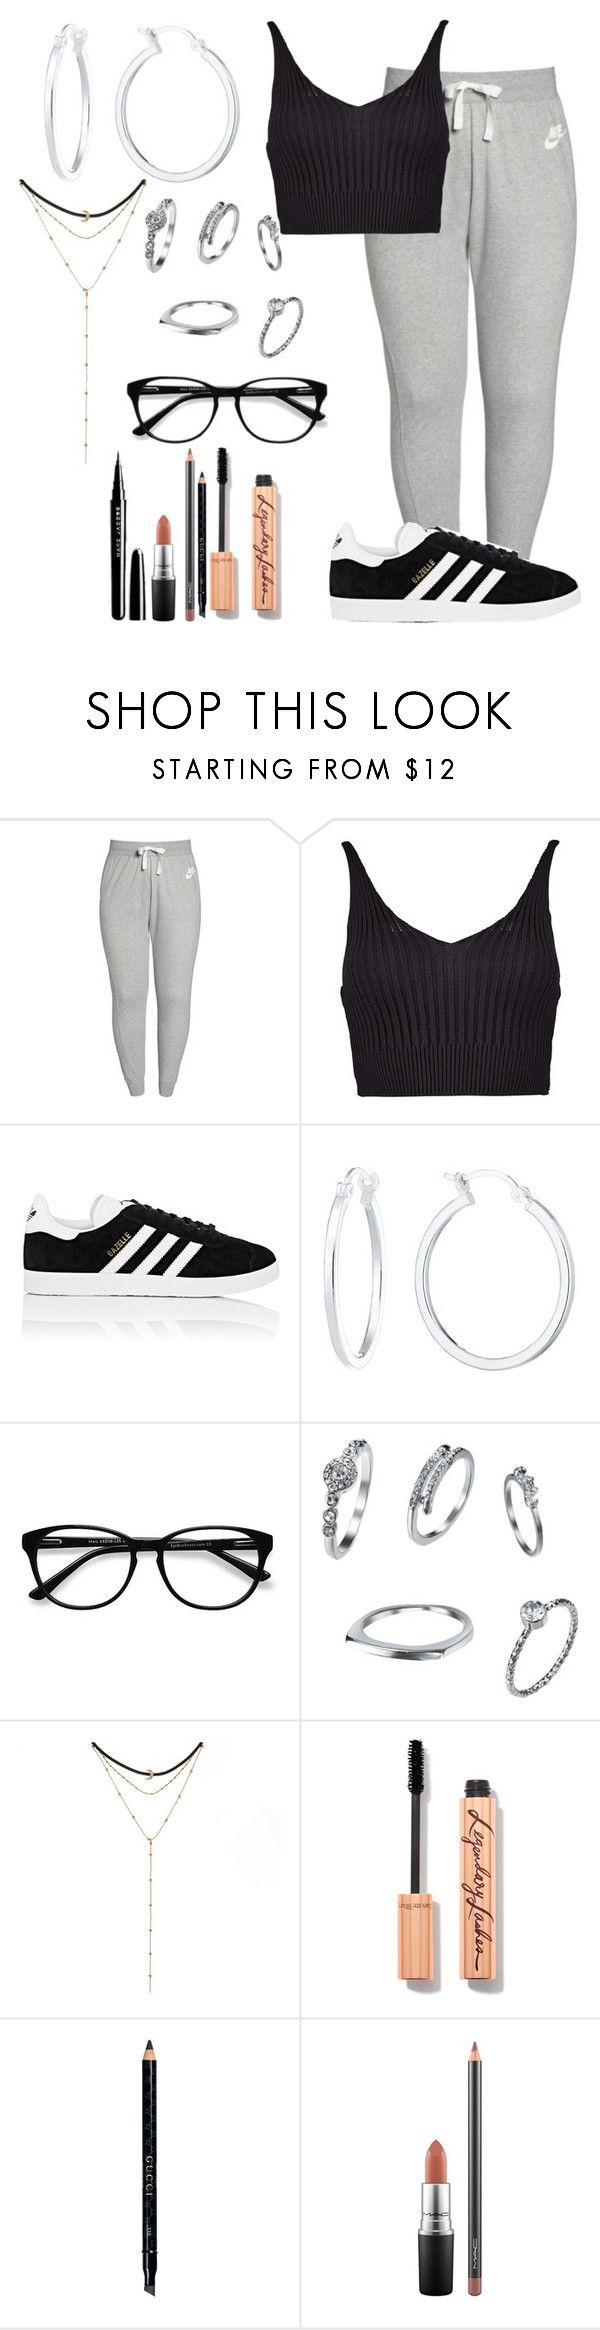 """Untitled #509"" by ines-321 ❤ liked on Polyvore featuring NIKE, Boohoo, adidas, EyeBuyDirect.com, Gucci and MAC Cosmetics"